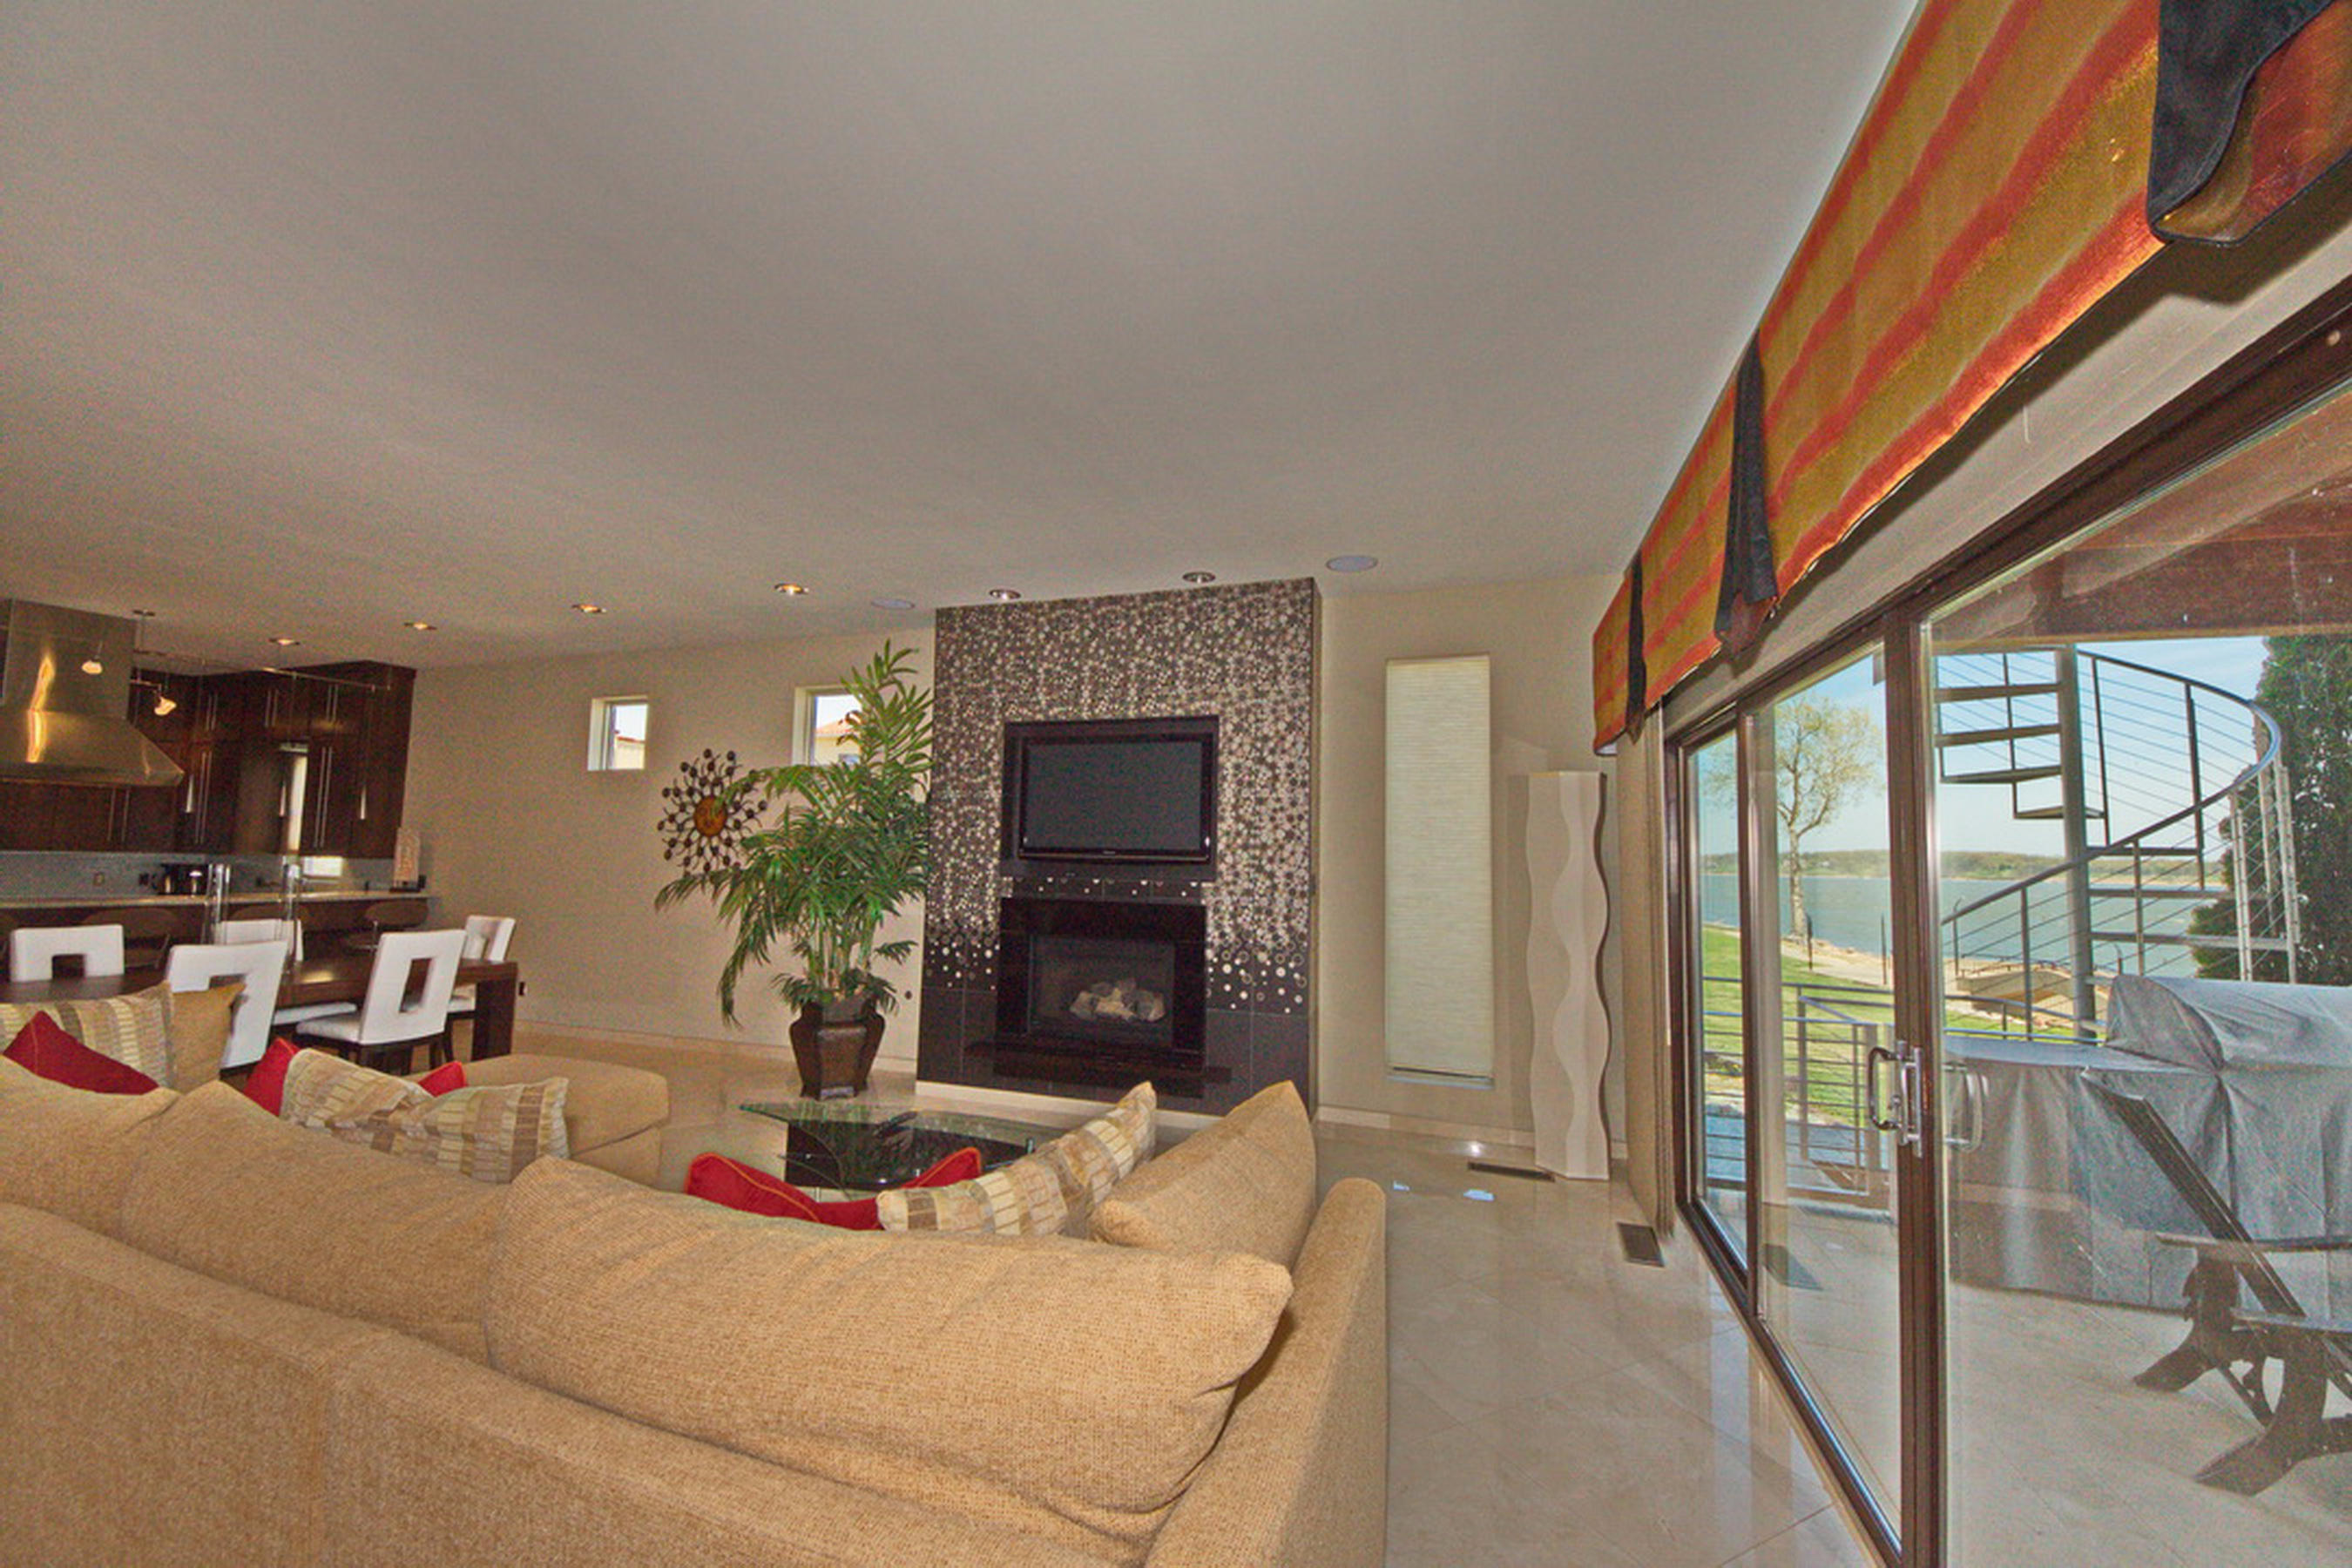 24-Ll Living-Fire Place-View-Patio